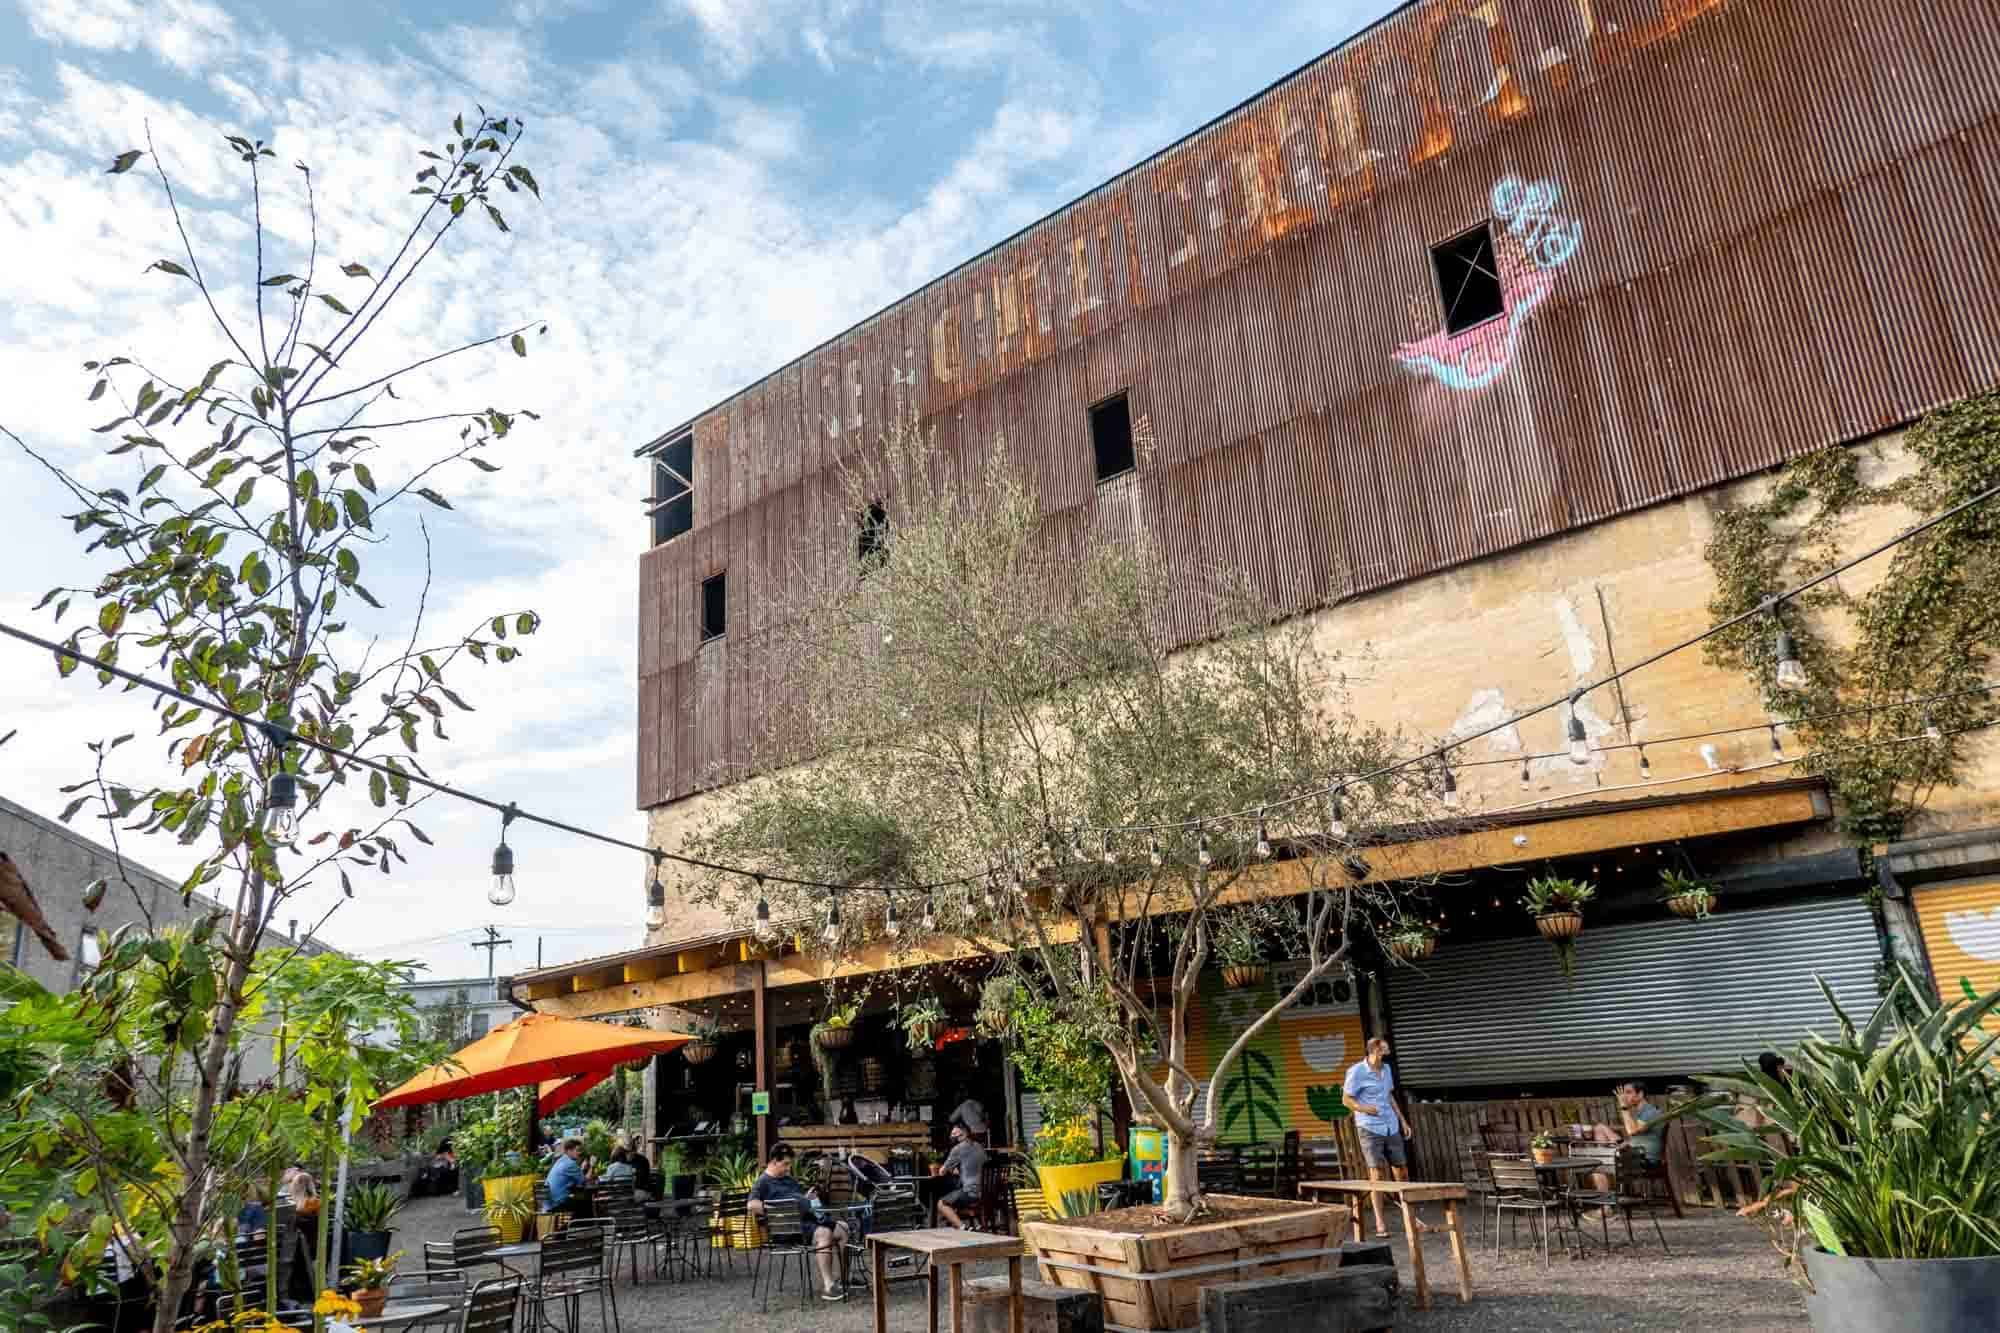 Beer garden at base of rusted, abandoned industrial building